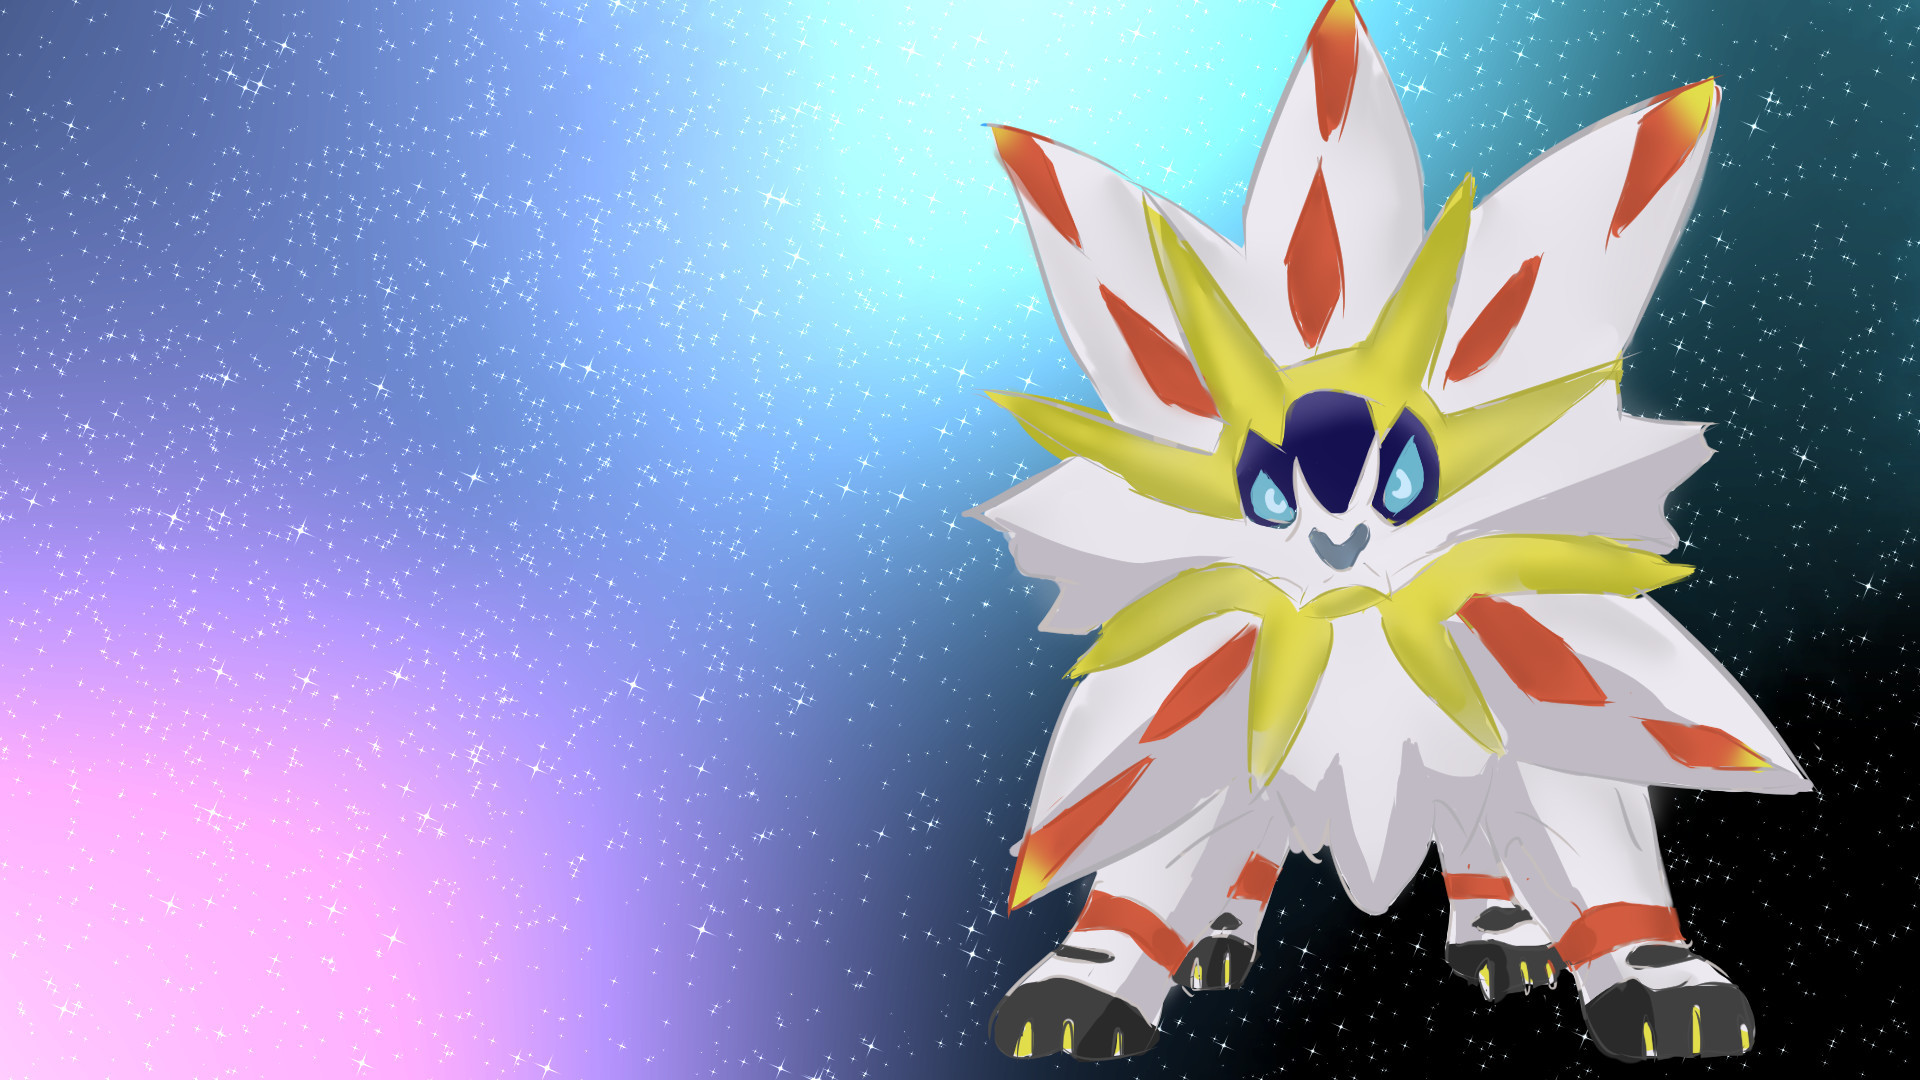 1920x1080 Pokemon Sun legendary by TombieFox Pokemon Sun legendary by TombieFox